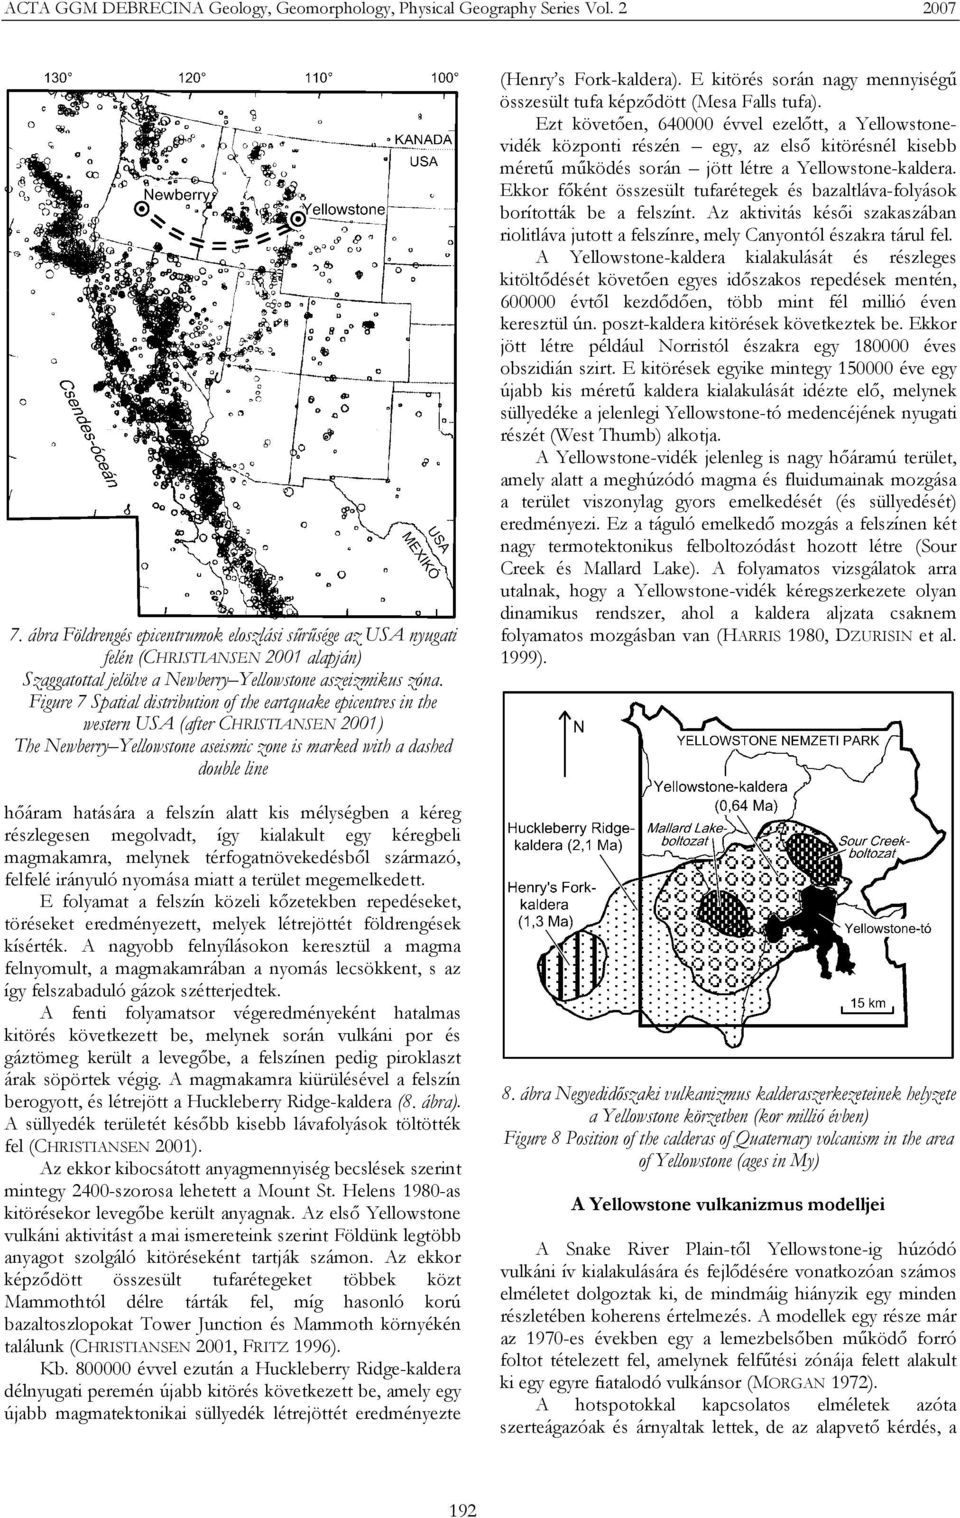 Figure 7 Spatial distribution of the eartquake epicentres in the western USA (after CHRISTIANSEN 2001) The Newberry Yellowstone aseismic zone is marked with a dashed double line hőáram hatására a